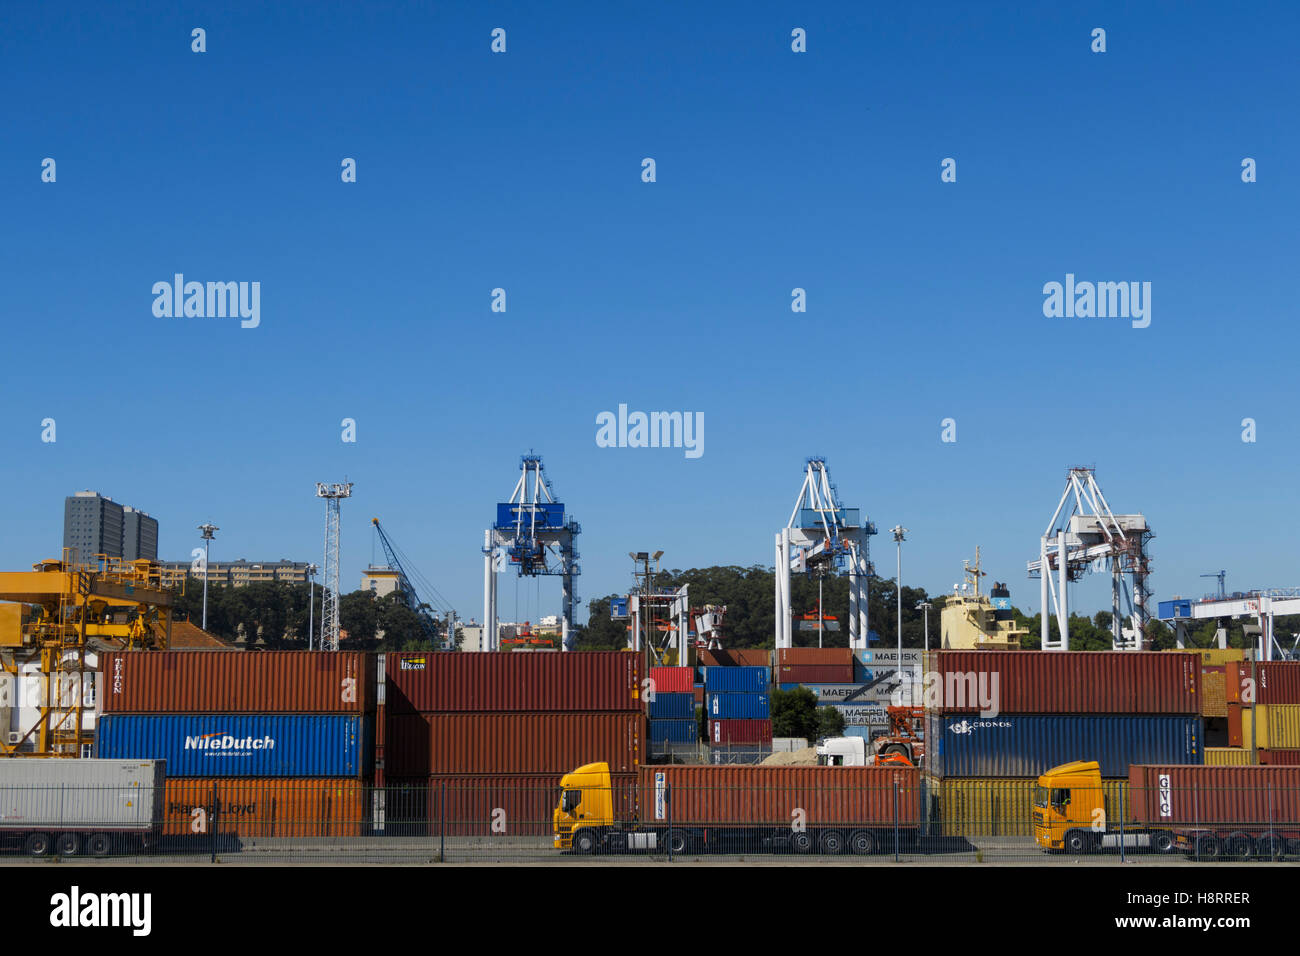 Shipping containers, trucks and cranes at Leixões port in Matosinhos, Portugal, Europe Stock Photo